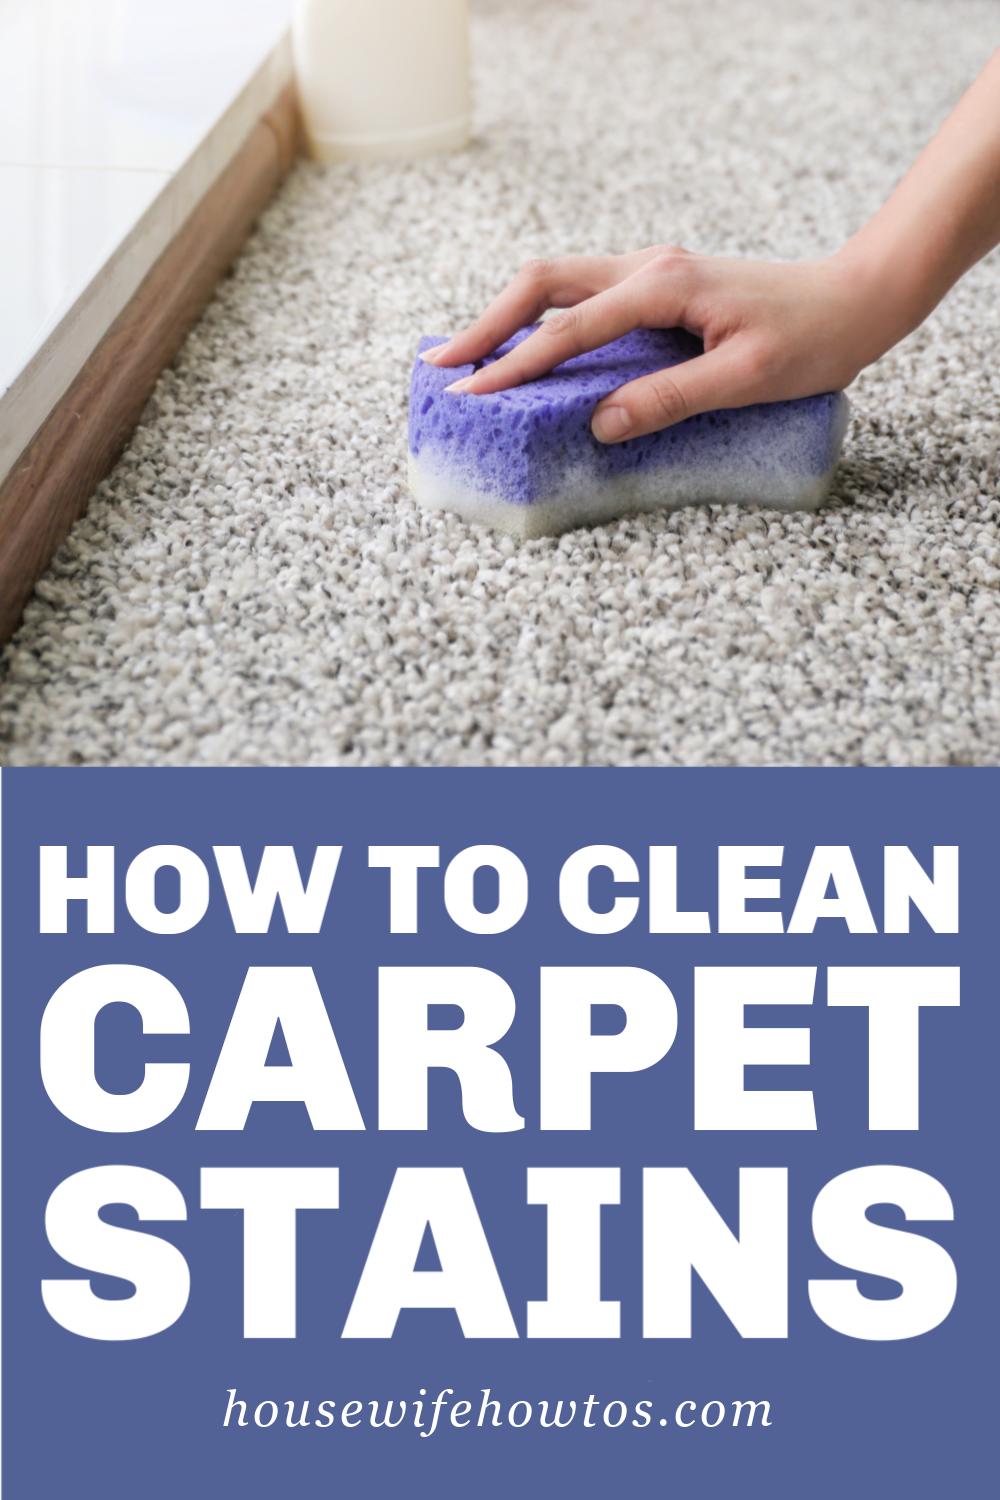 How To Clean Carpet Stains In 2020 Cleaning Carpet Stains How To Clean Carpet Carpet Stains